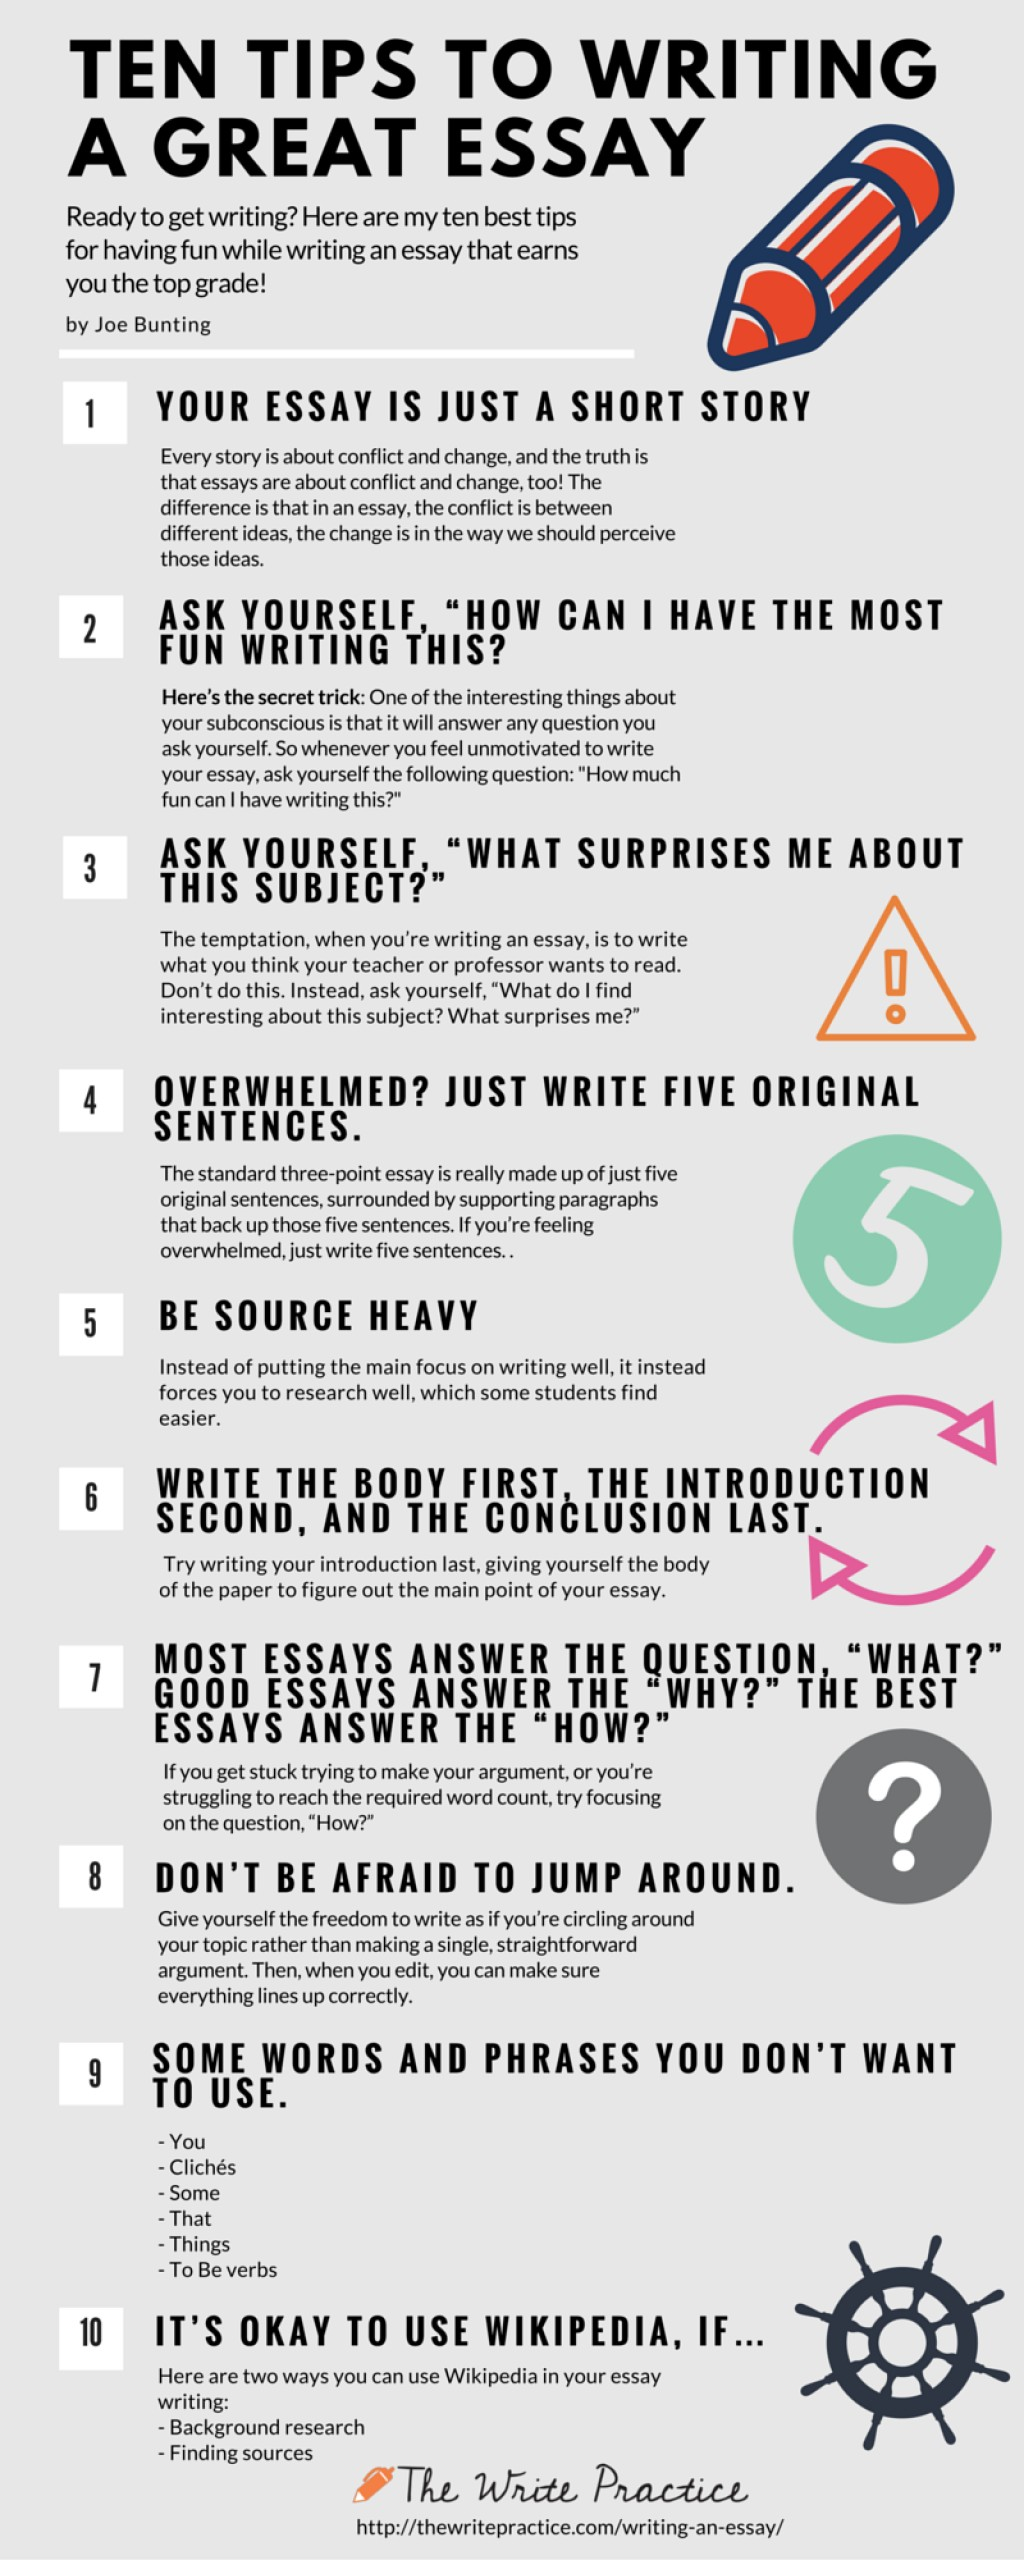 001 Tips For Writing An Essay1 Essay Example How To Shocking Write About Myself A Scholarship Excellent Conclusion Pdf Large